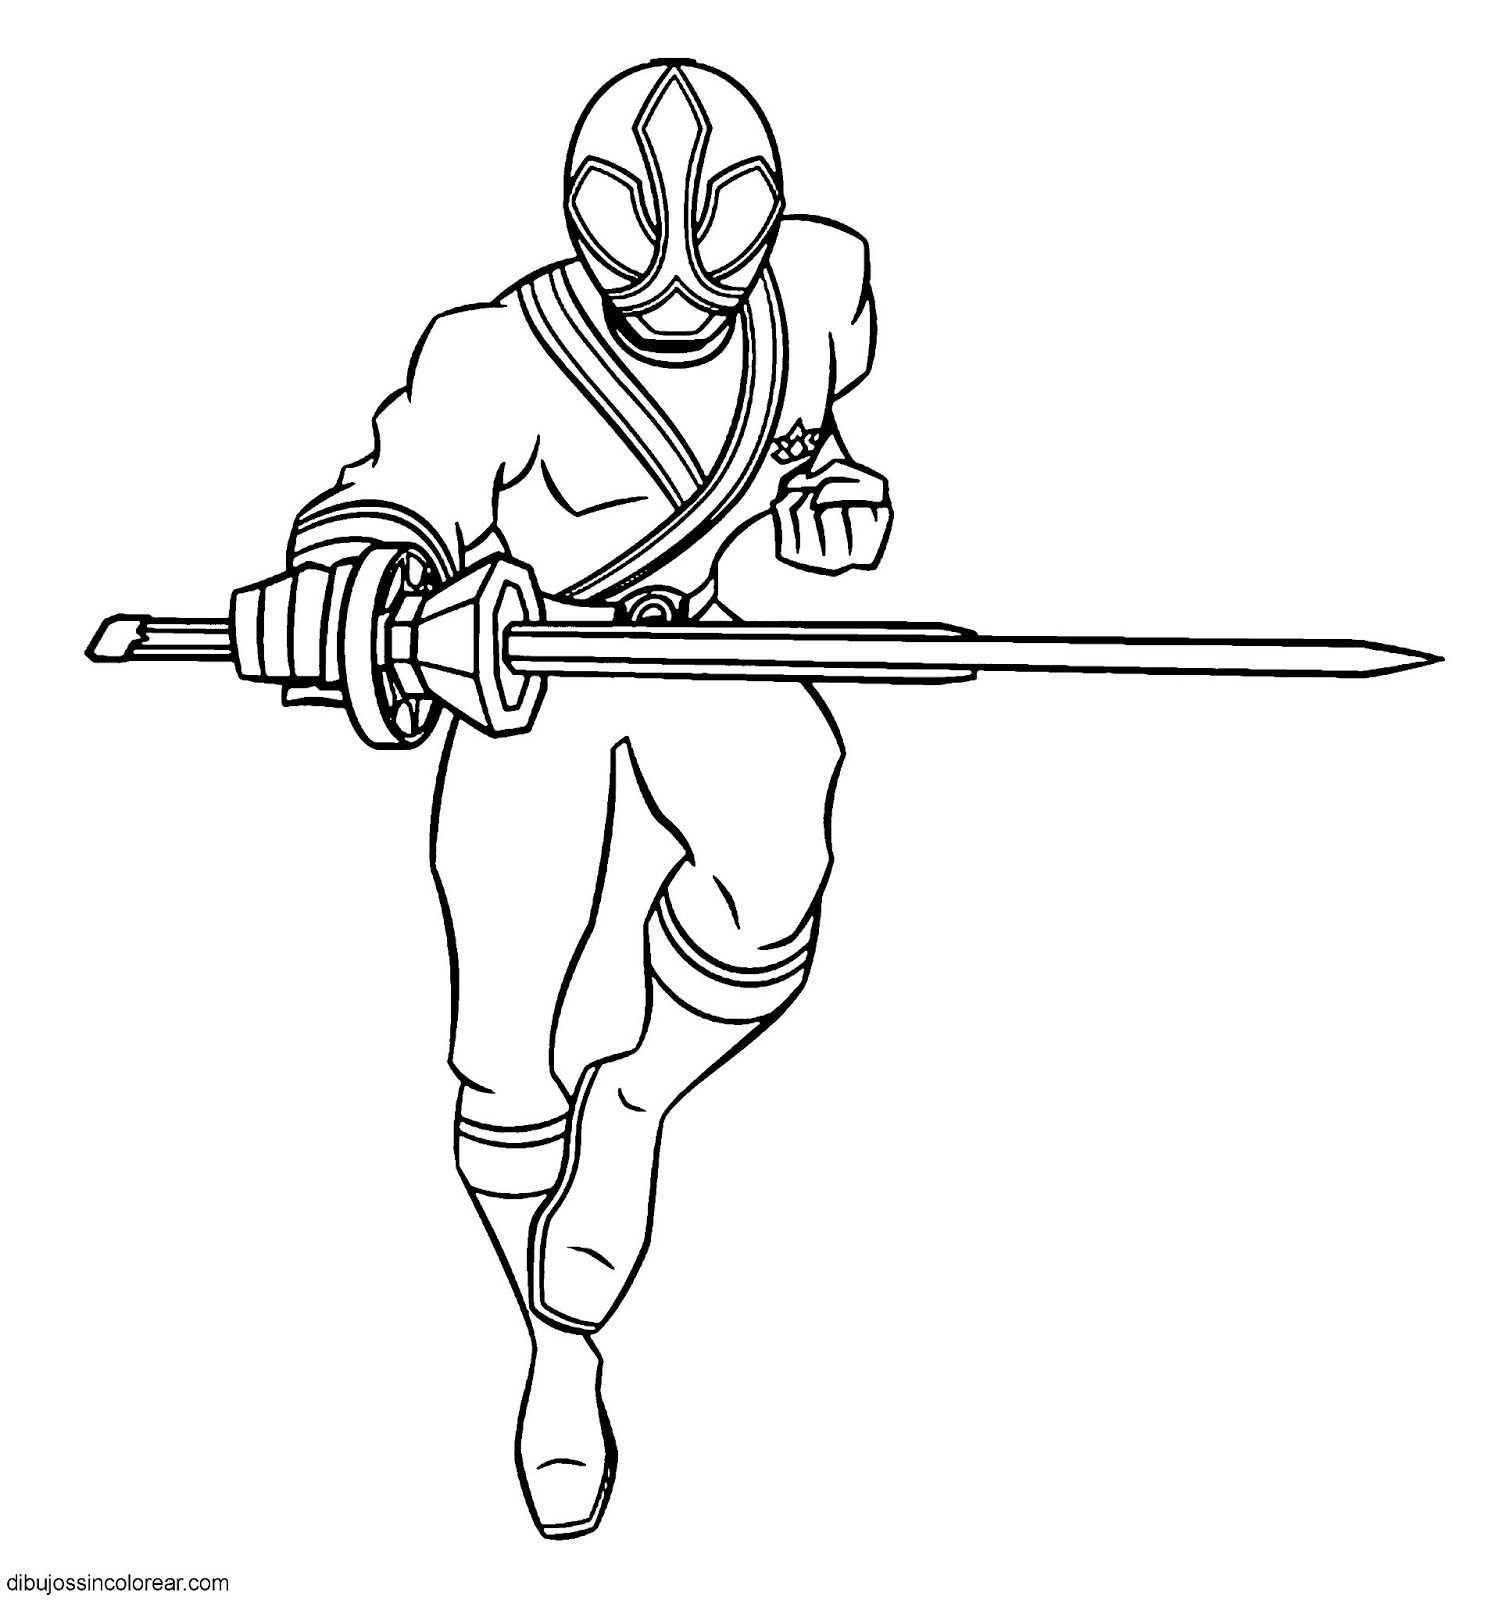 lego power rangers coloring pages lego power rangers coloring pages www topsimages com macht lego power pages rangers coloring